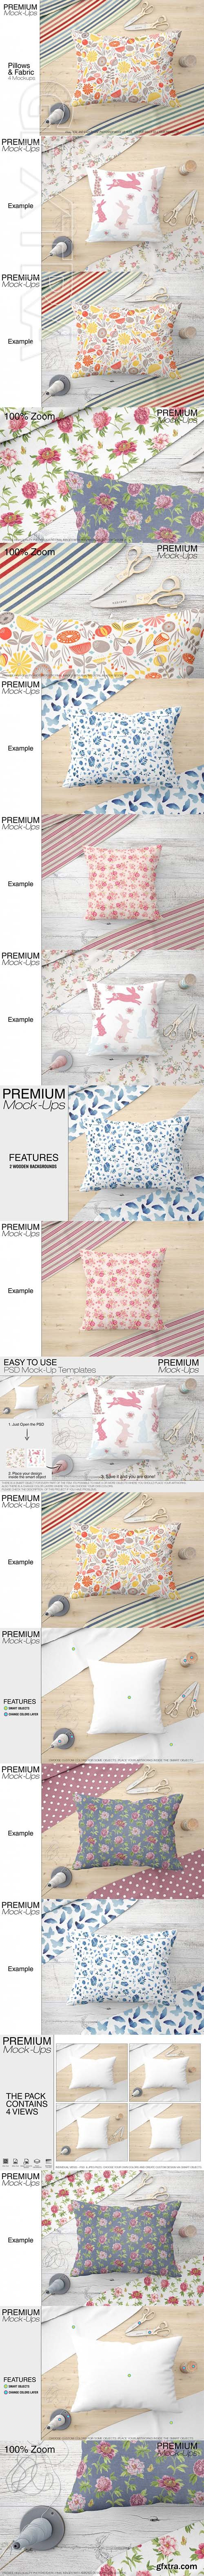 Two Types of Pillows & Fabric Set